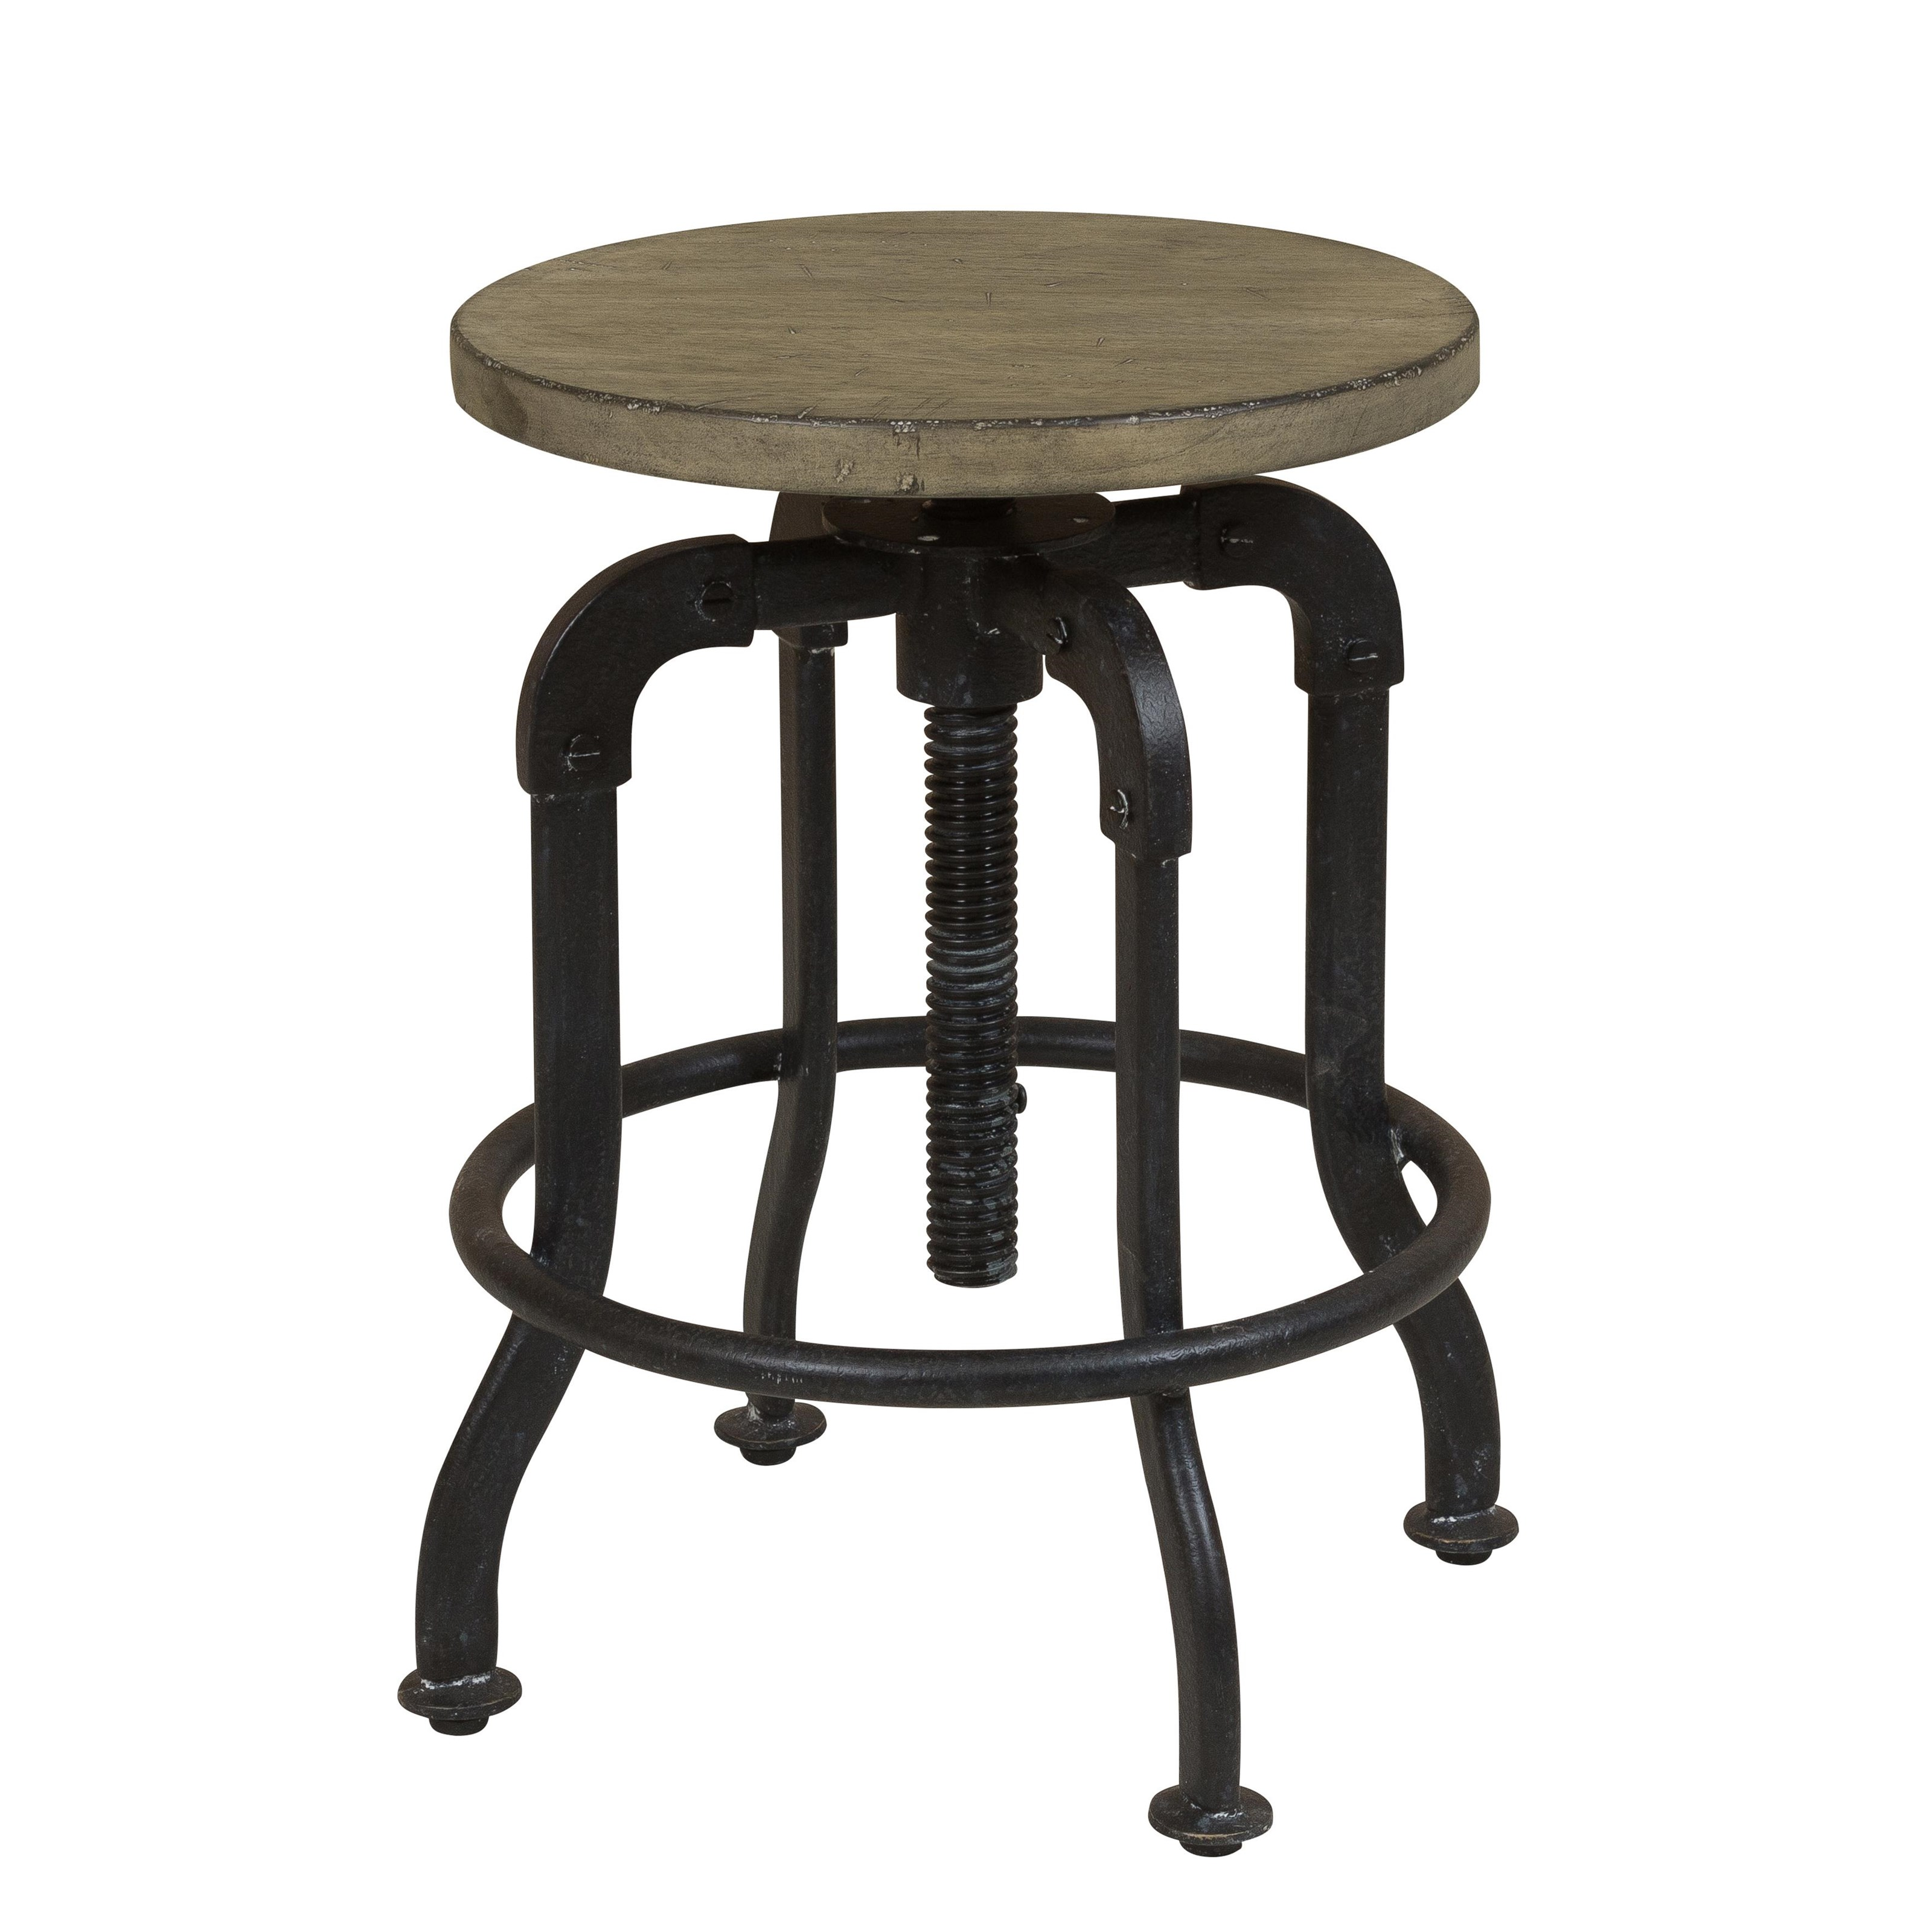 Morris Home Furnishings Oregon District Oregon District Adjustable Barstool - Item Number: 400247735